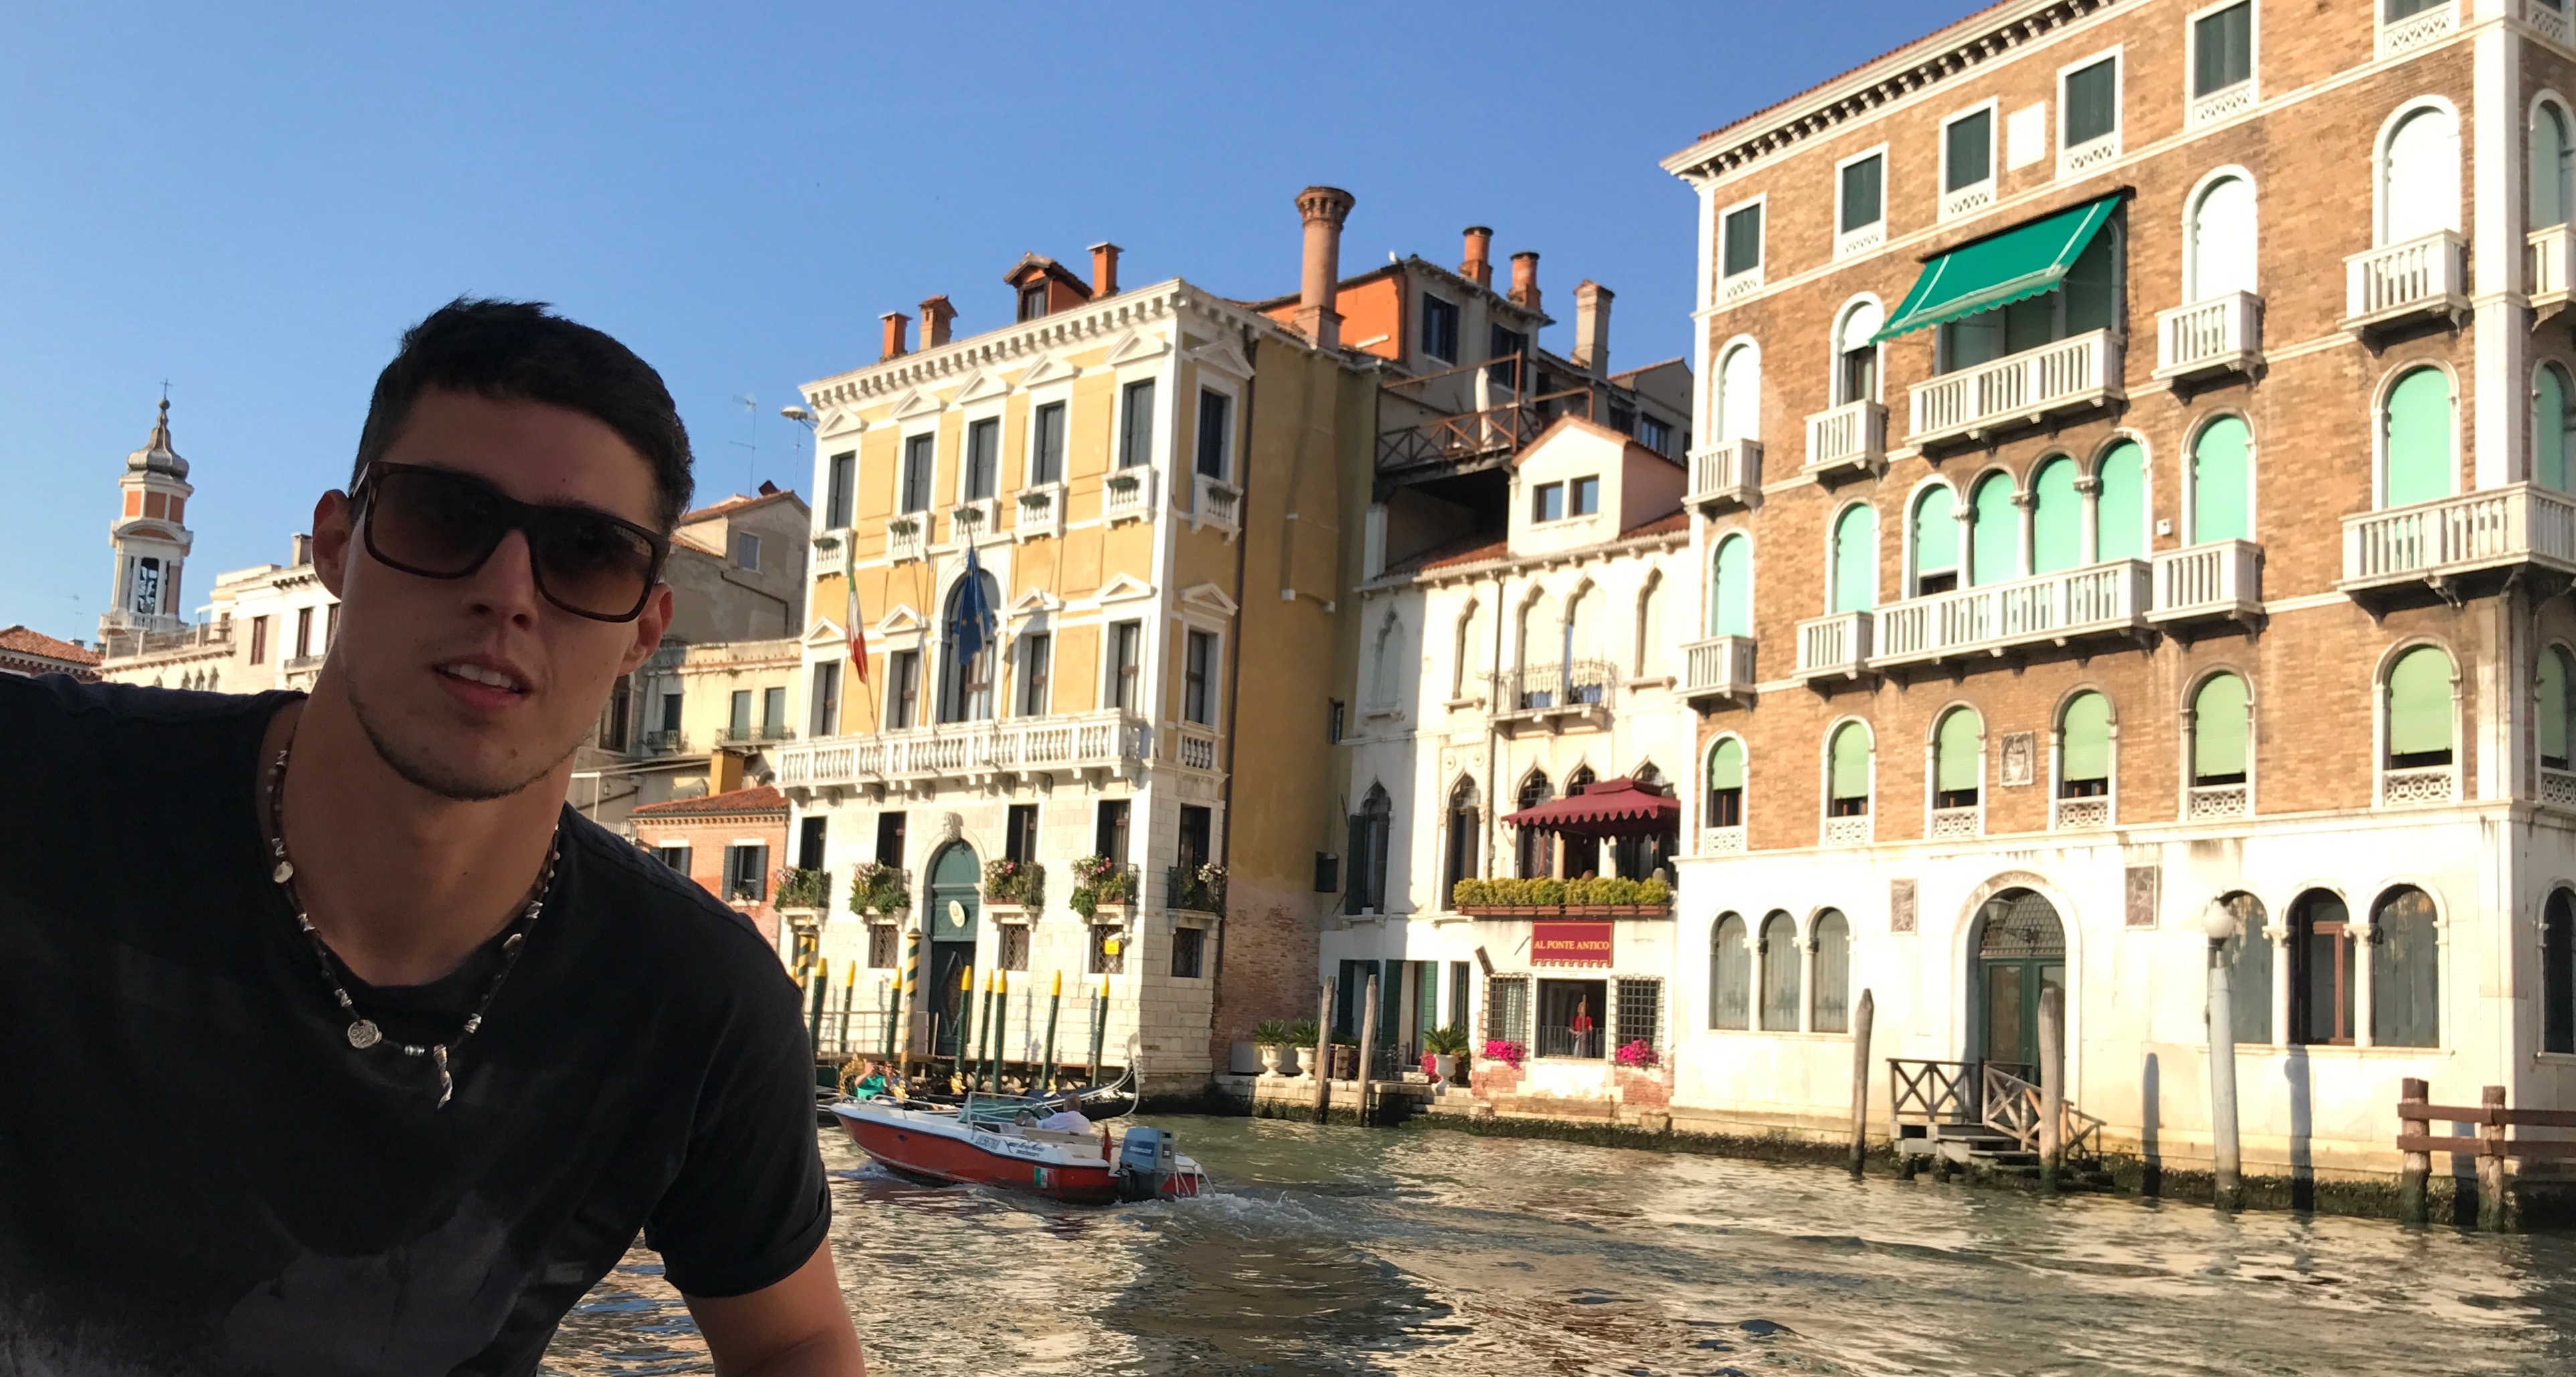 Venice is one of the iconic tourist destinations that are popular among tourists. If you are thinking of planning a trip to this extraordinary city, then you have come to the right place.